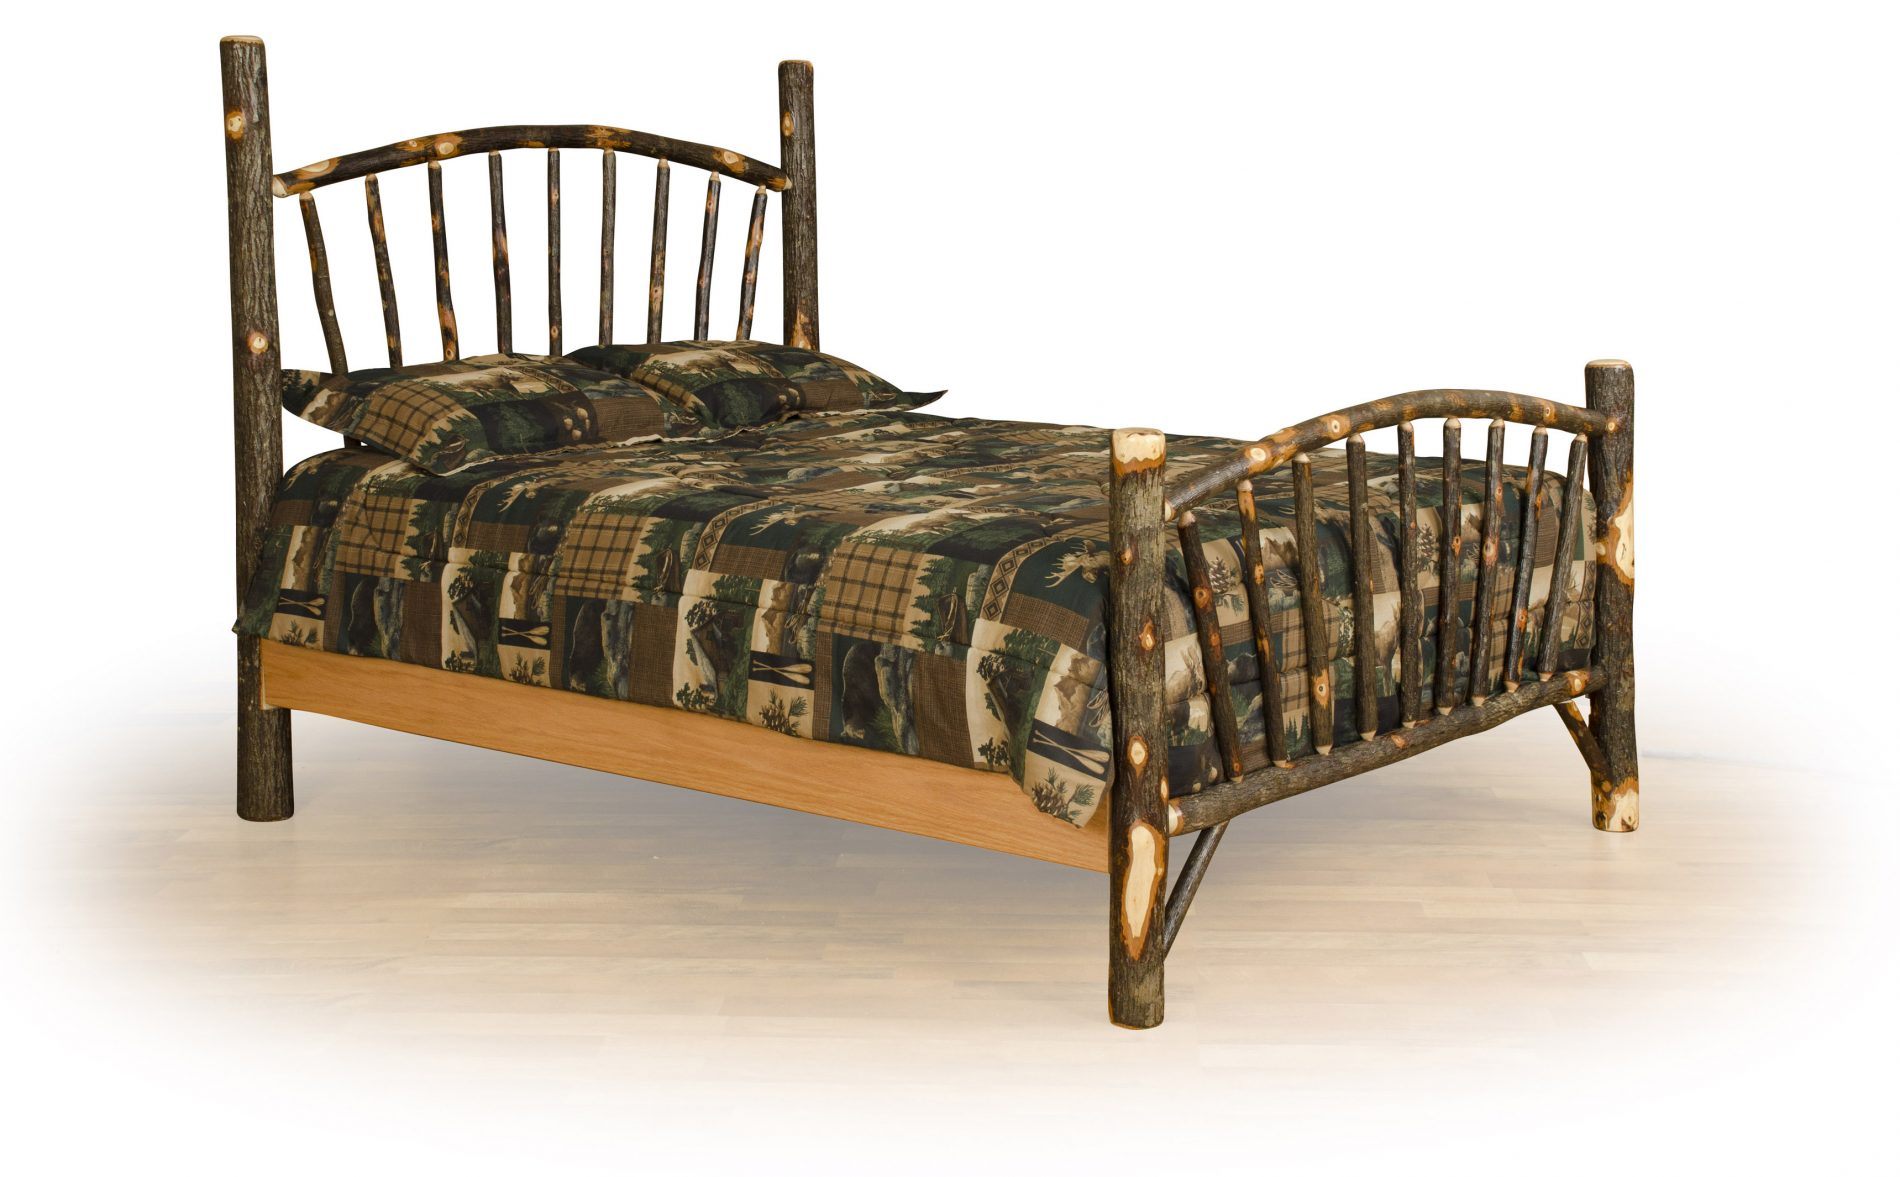 hickory chair furniture beds blue slipper bedroom rustic wood